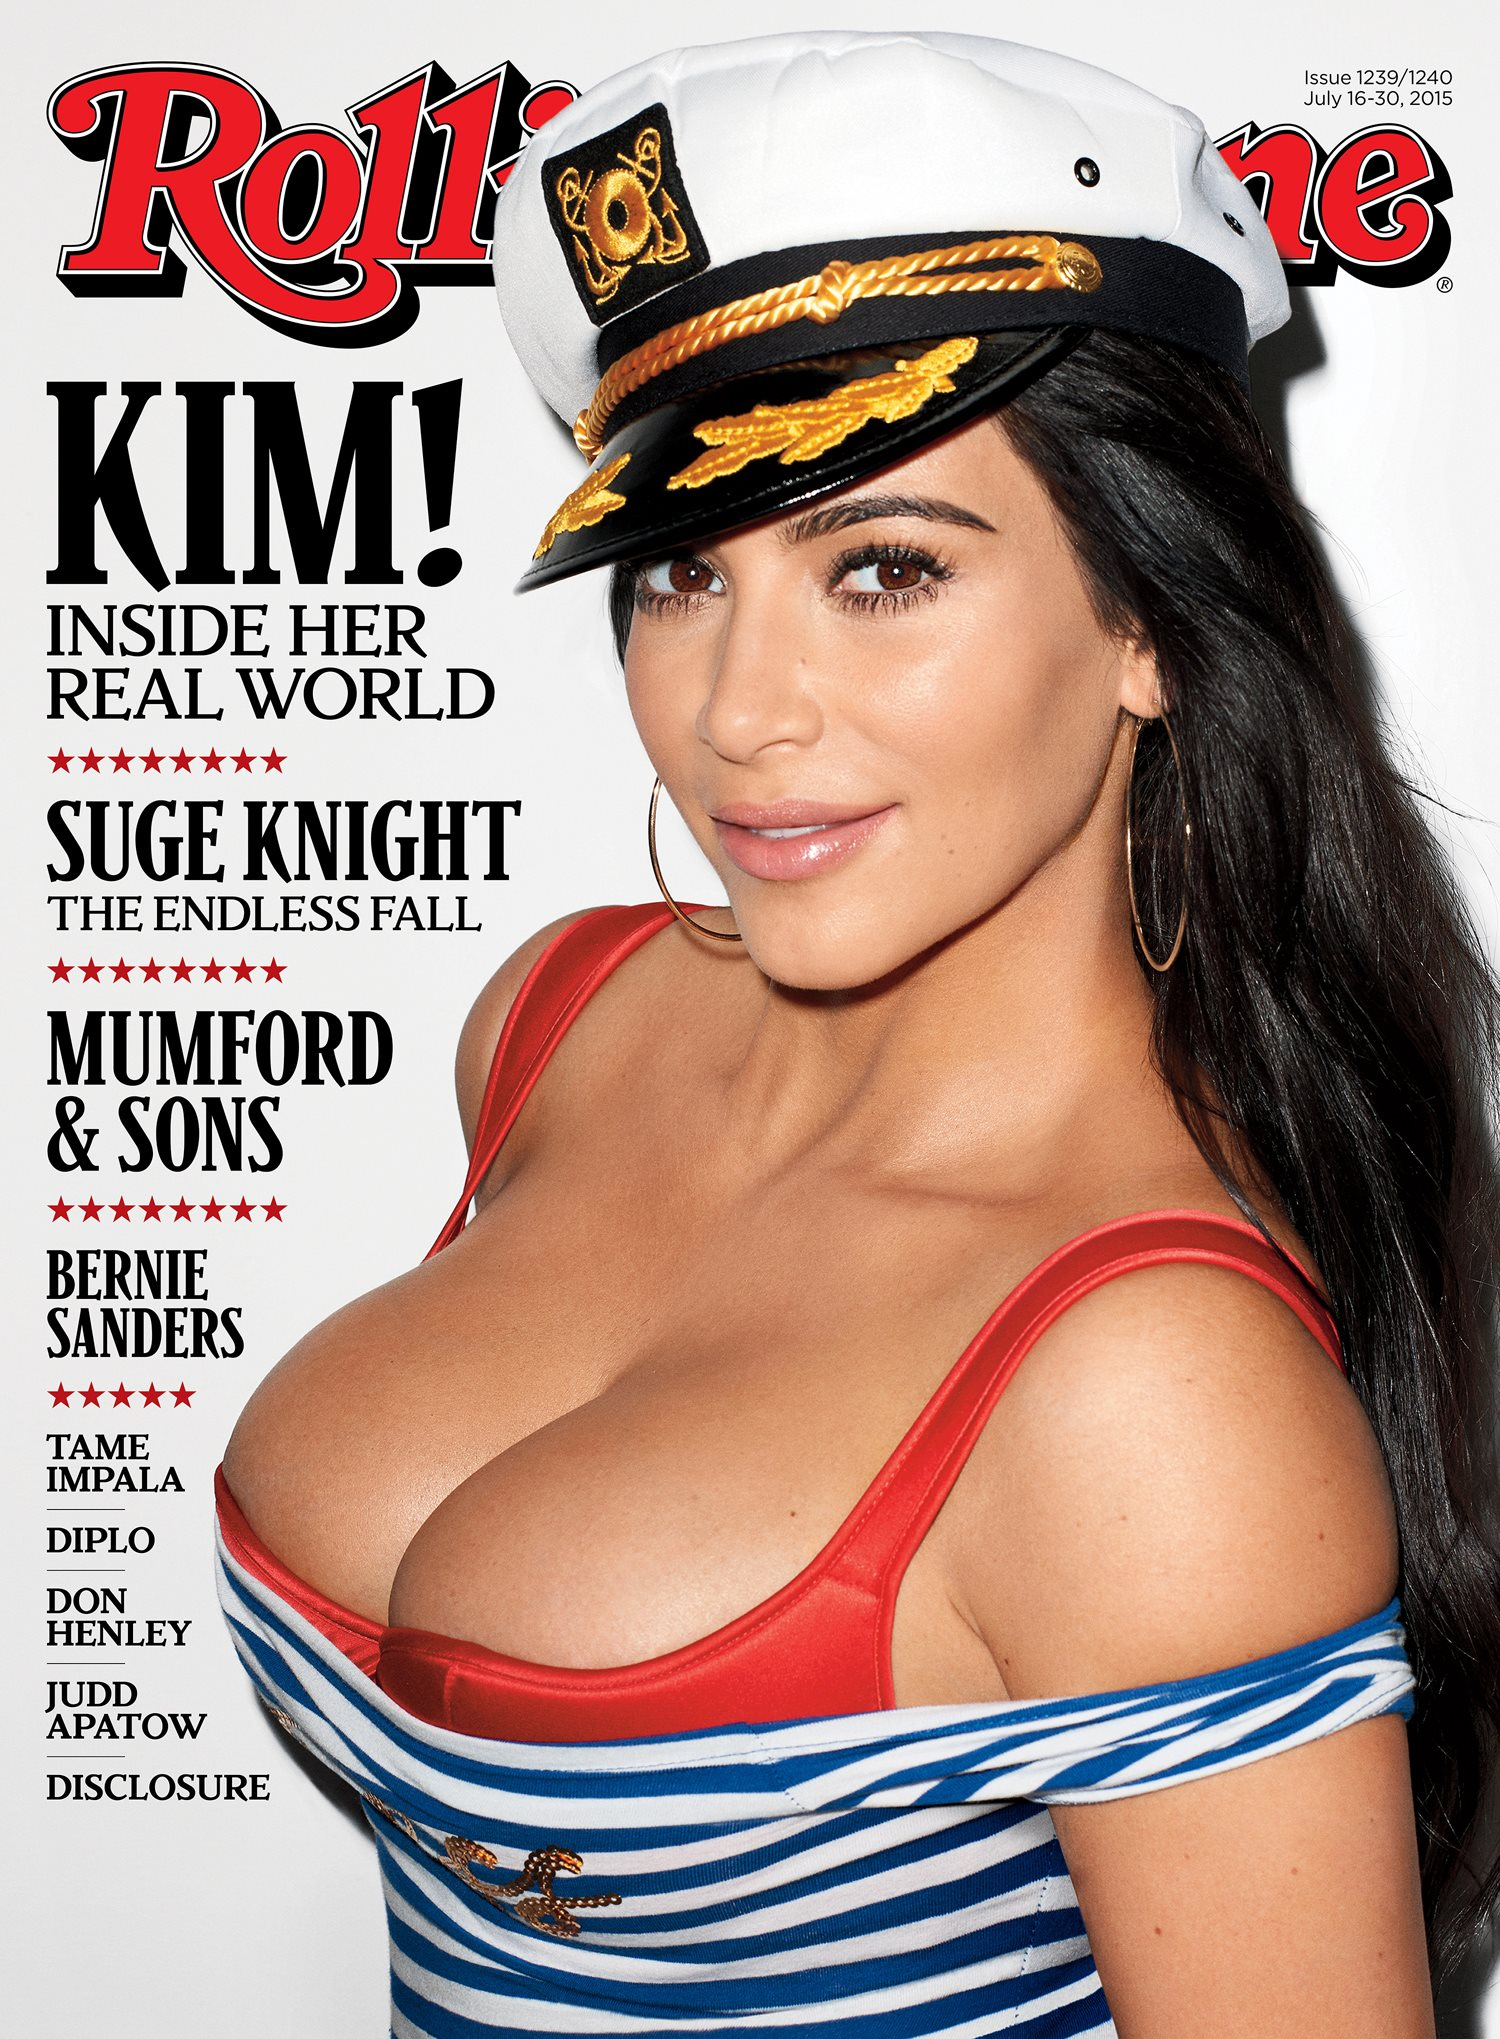 Rolling Stone's Kim Kardashian Cover Is Justified?